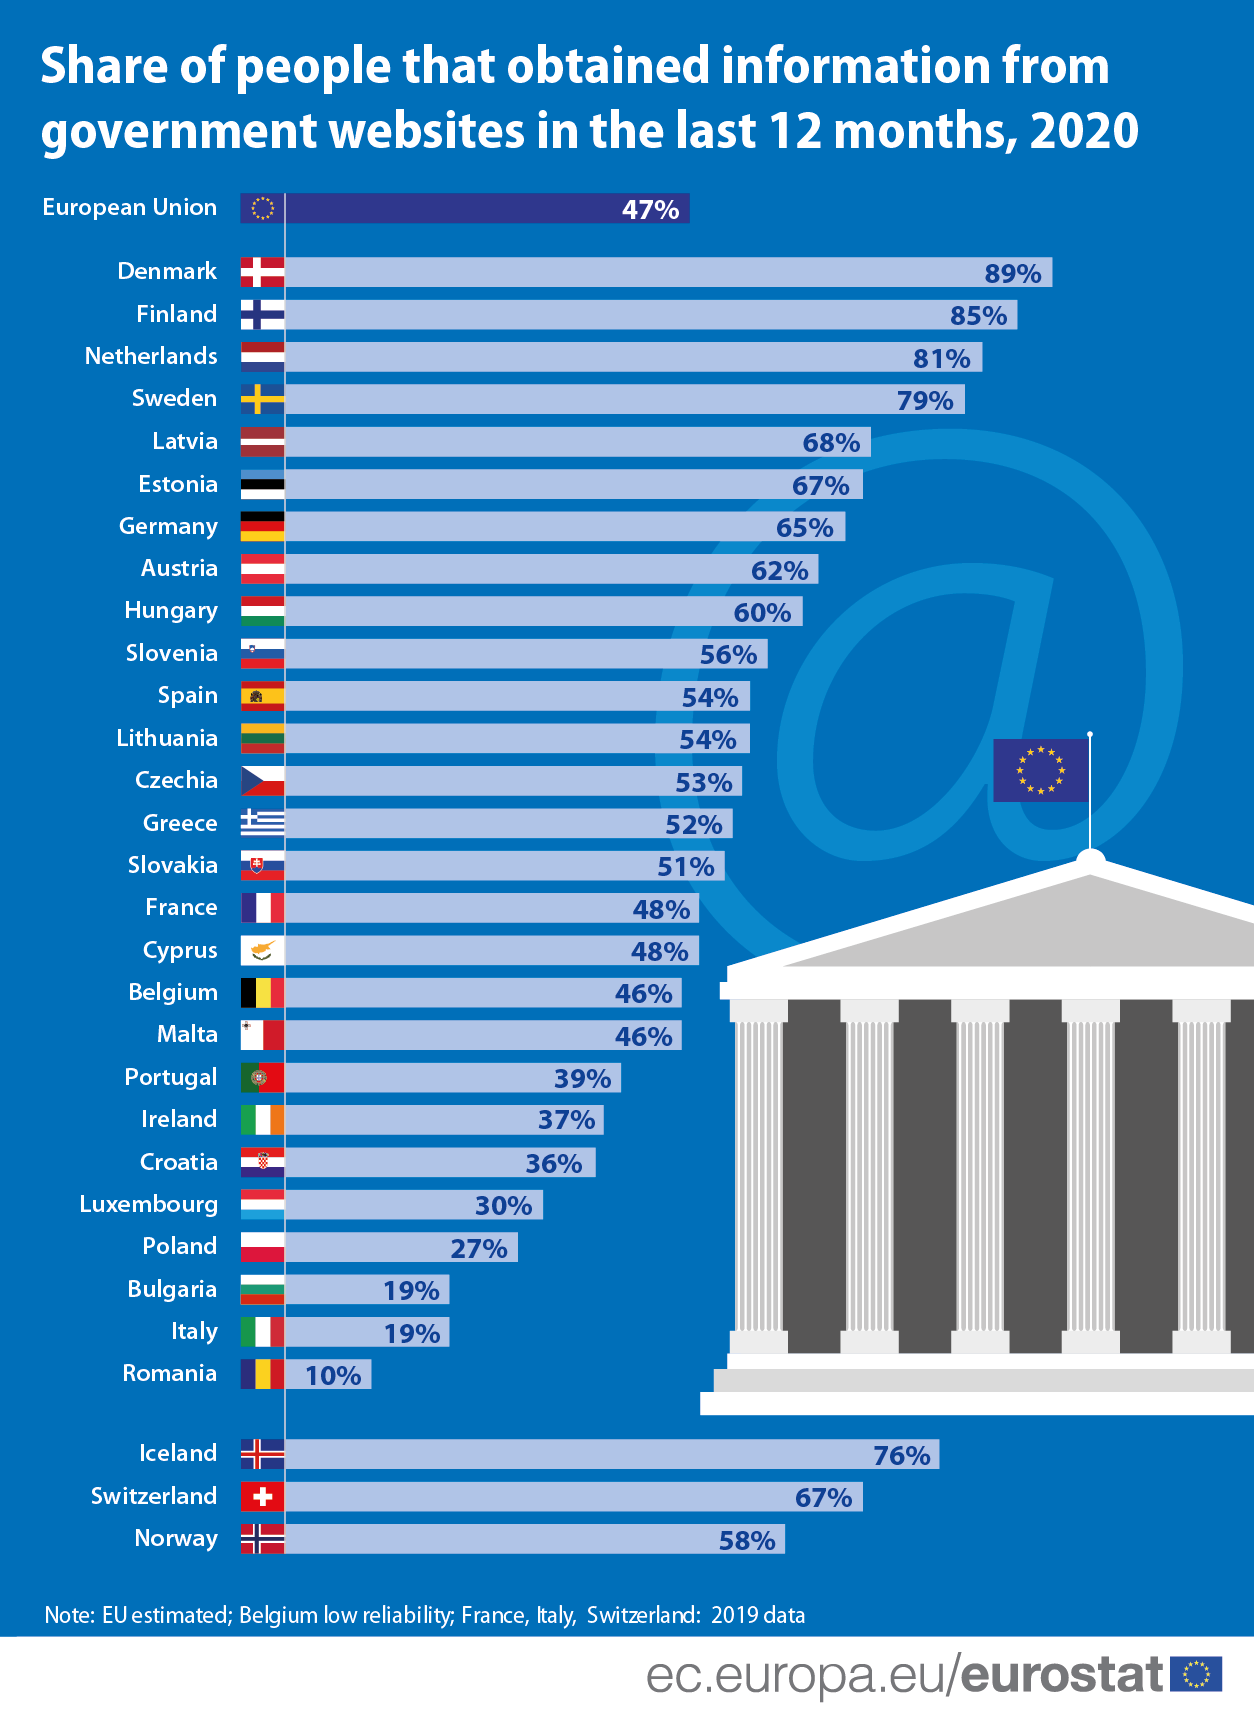 Infographic: Share of persons in the EU that obtained information from government websites in 2020 by country